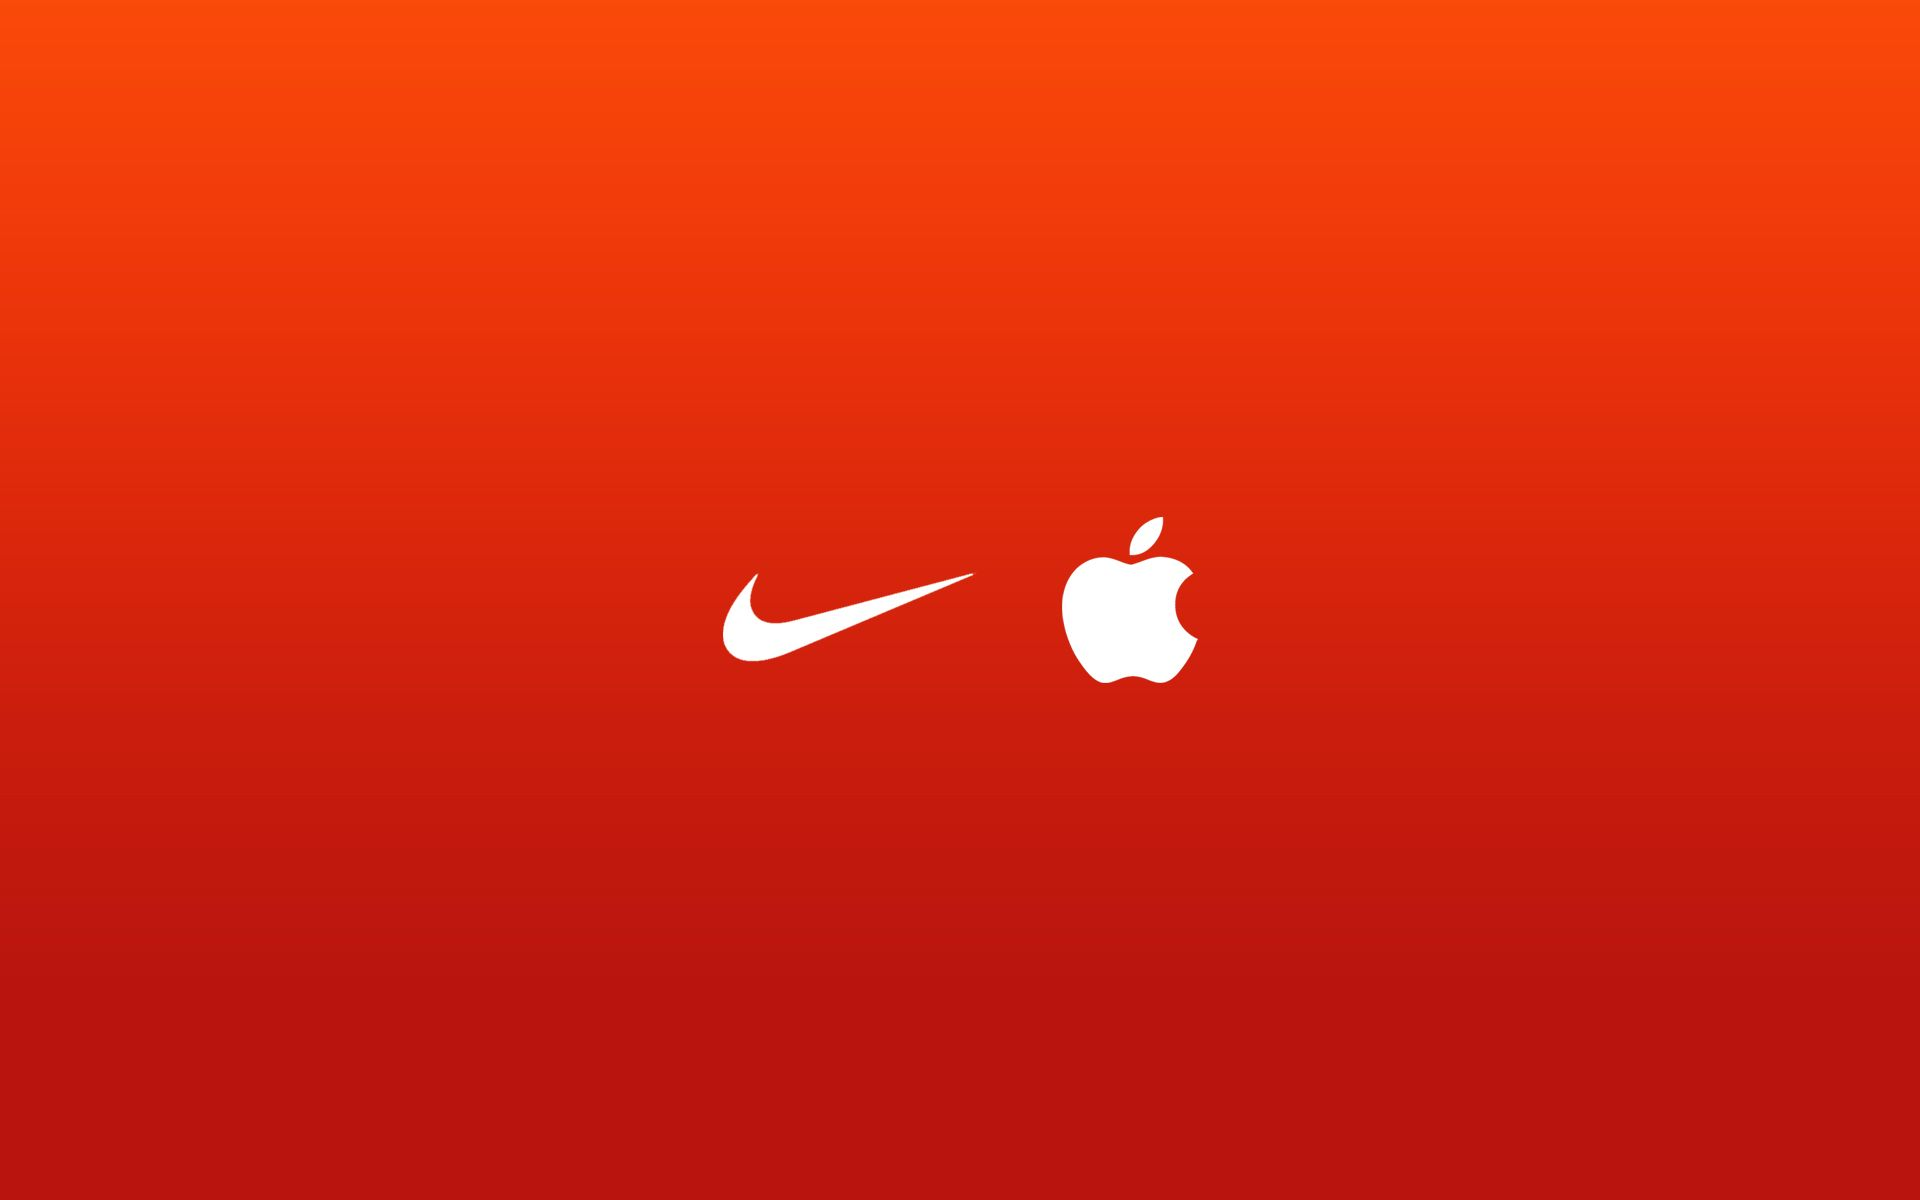 Fire Nike Wallpapers On Wallpaperdog